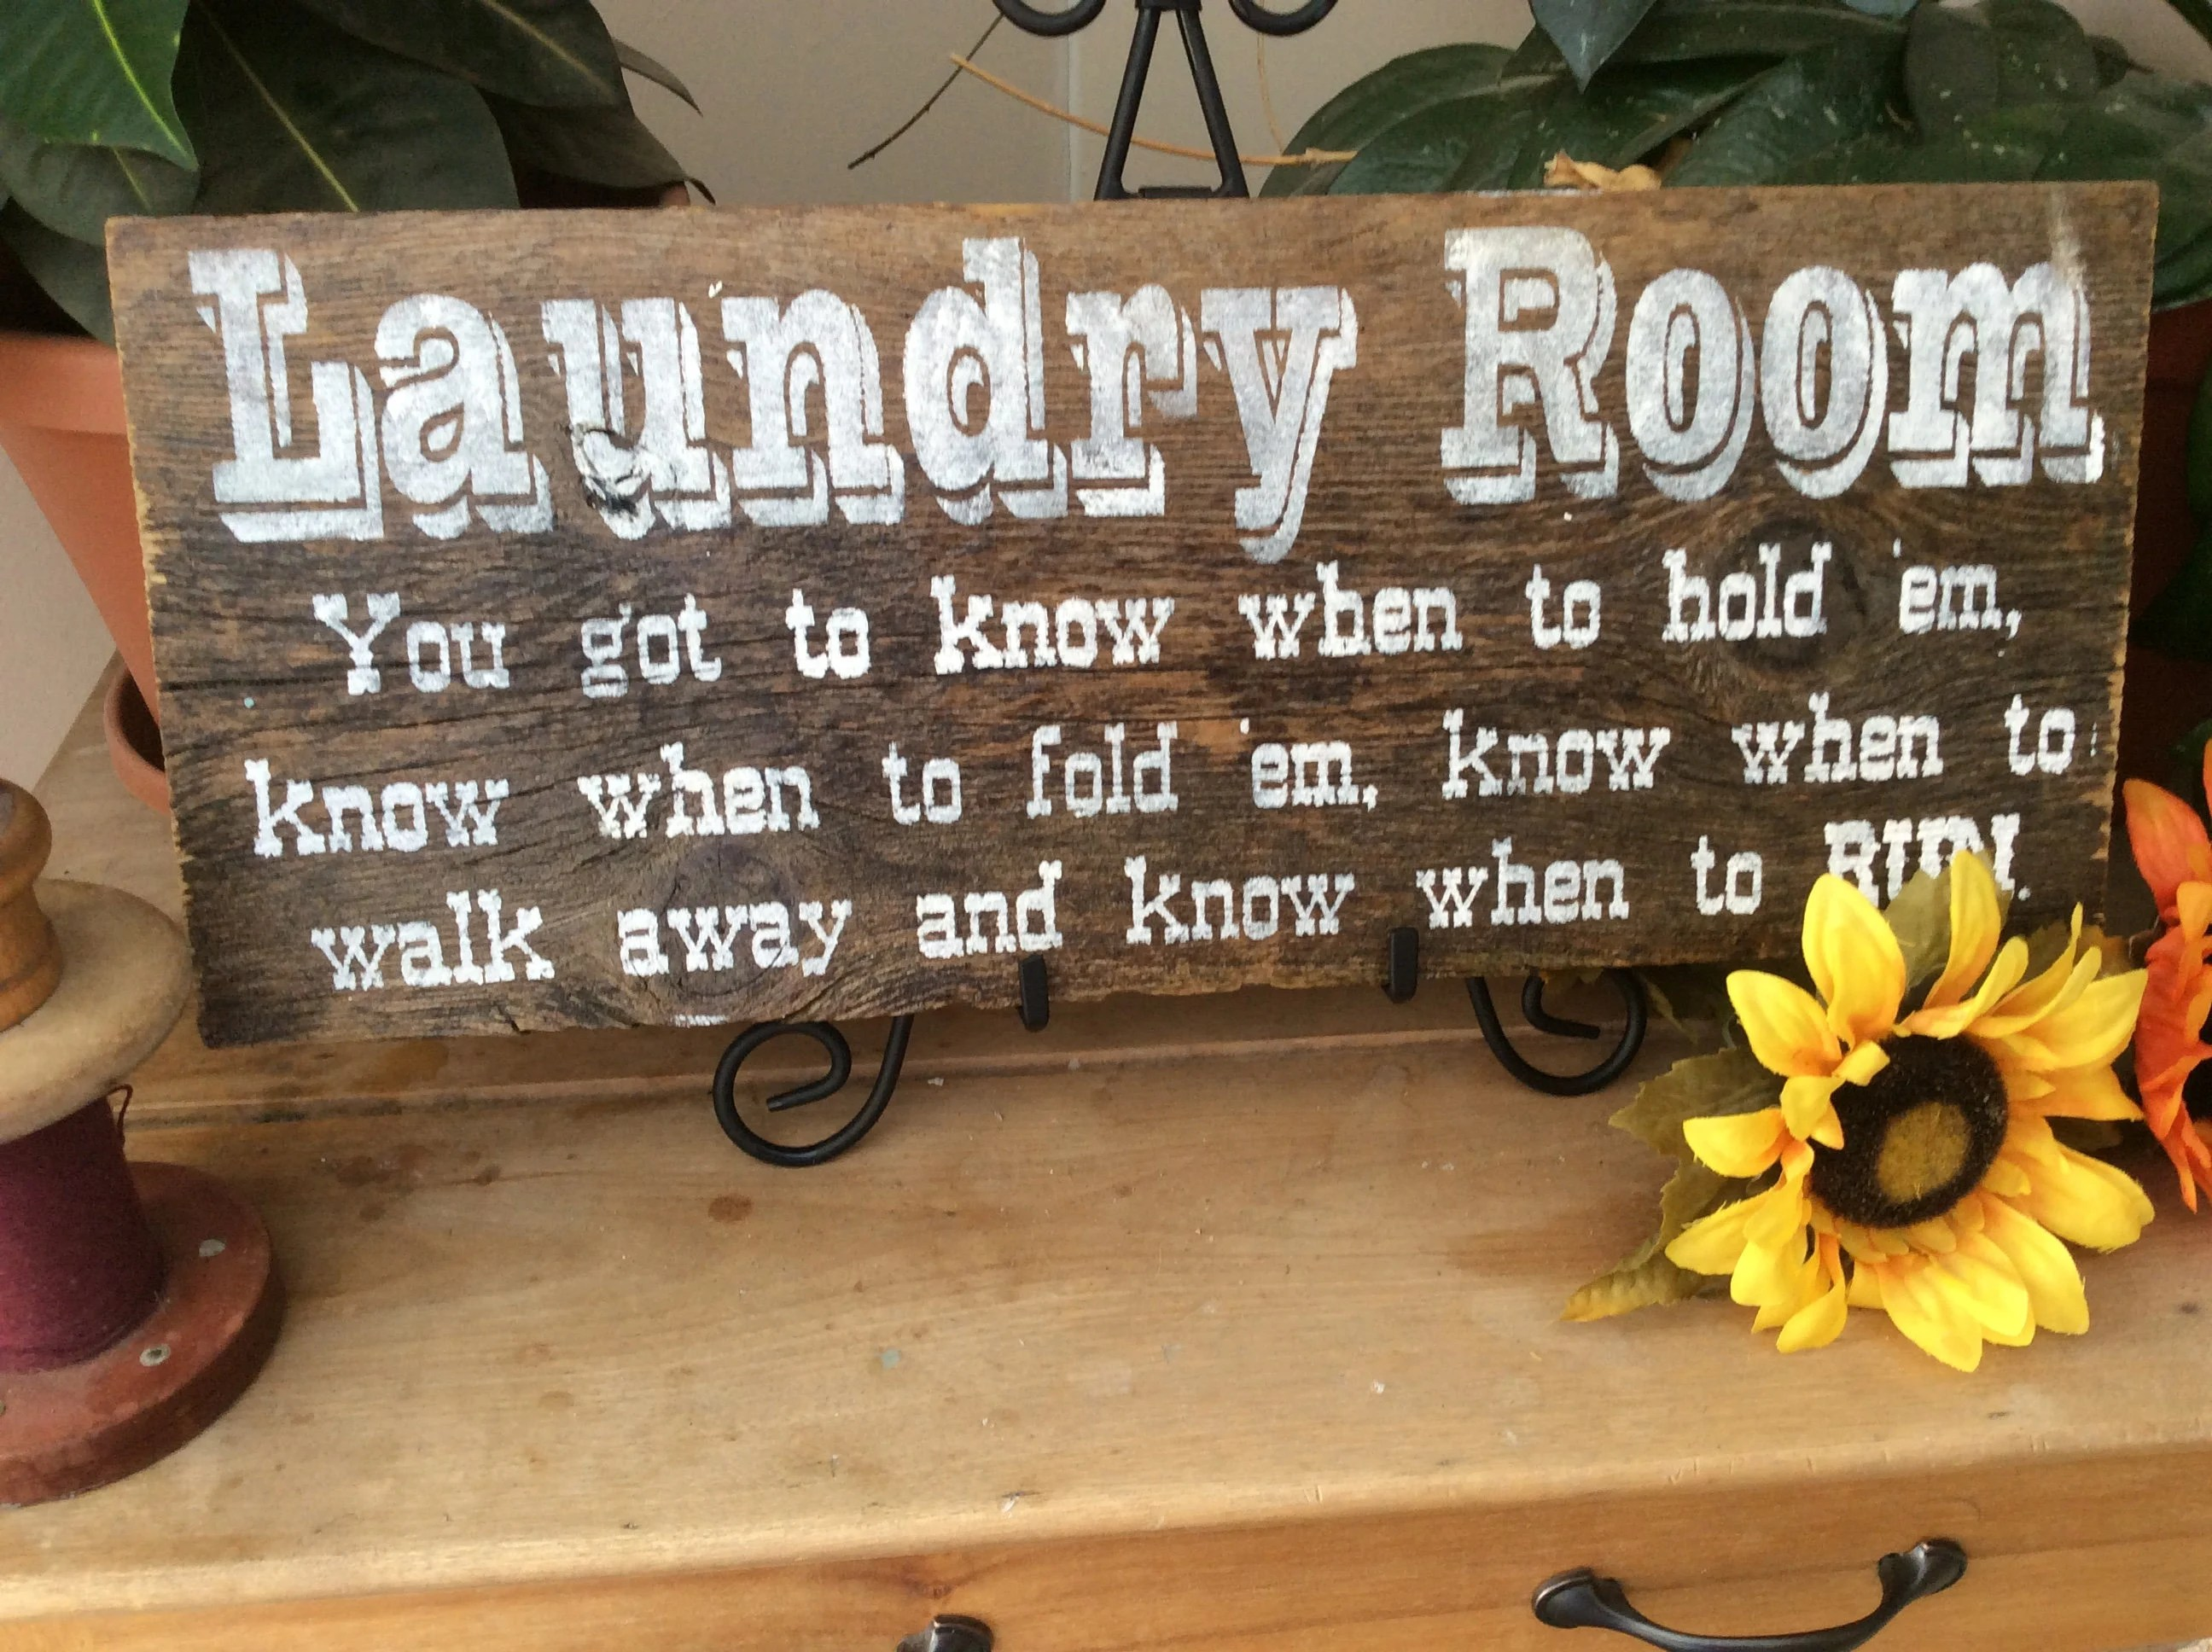 Phantasy Rustic Home Barnwood Gallery Photo Gallery Photo Laundry Room Laundry Room Western Home Cowboy Rustic Western Home Decor Wholesale Rustic Western Home Decor home decor Rustic Western Home Decor